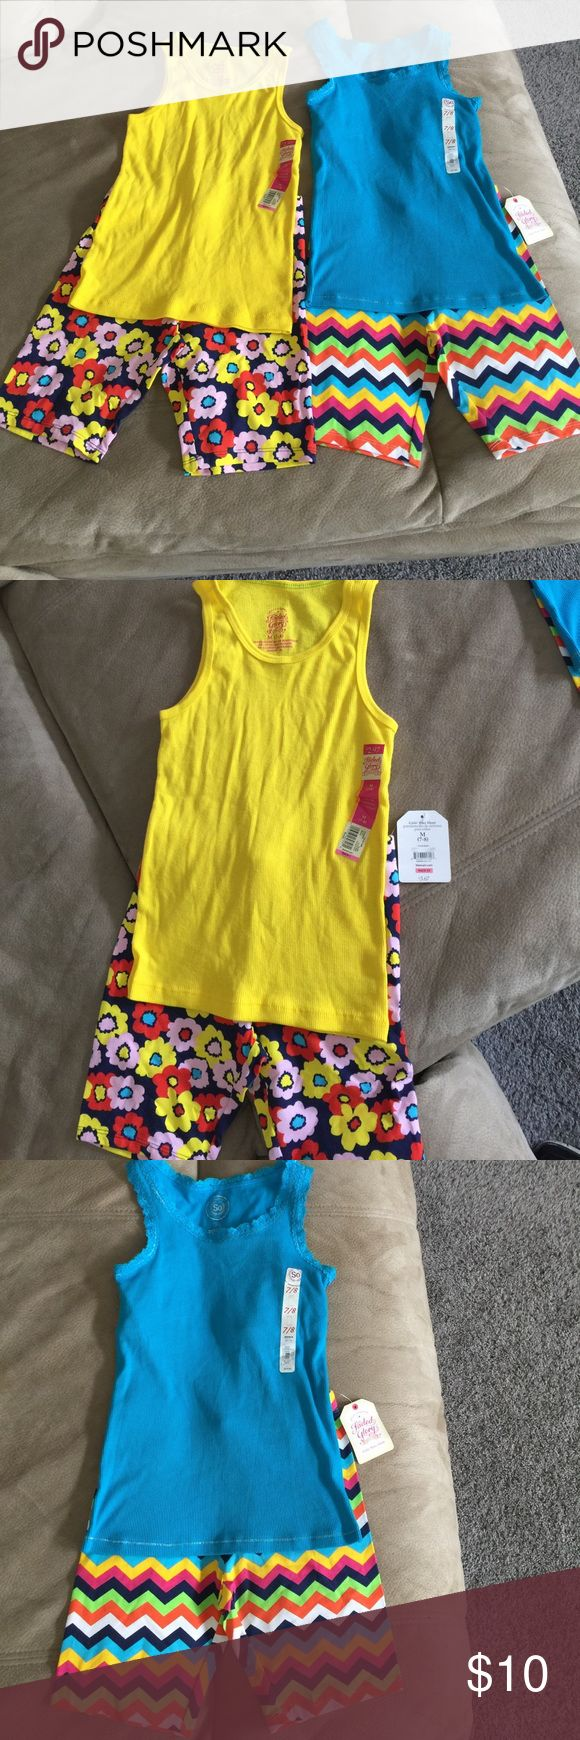 Girls bike shorts and tank top Girls size 7/8 tank tops and bike shorts. Yellow tank top, both bike shorts are Faded Glory. Blue tank top from Kohls SO (Authentic American Heritage). All NWT. Matching Sets